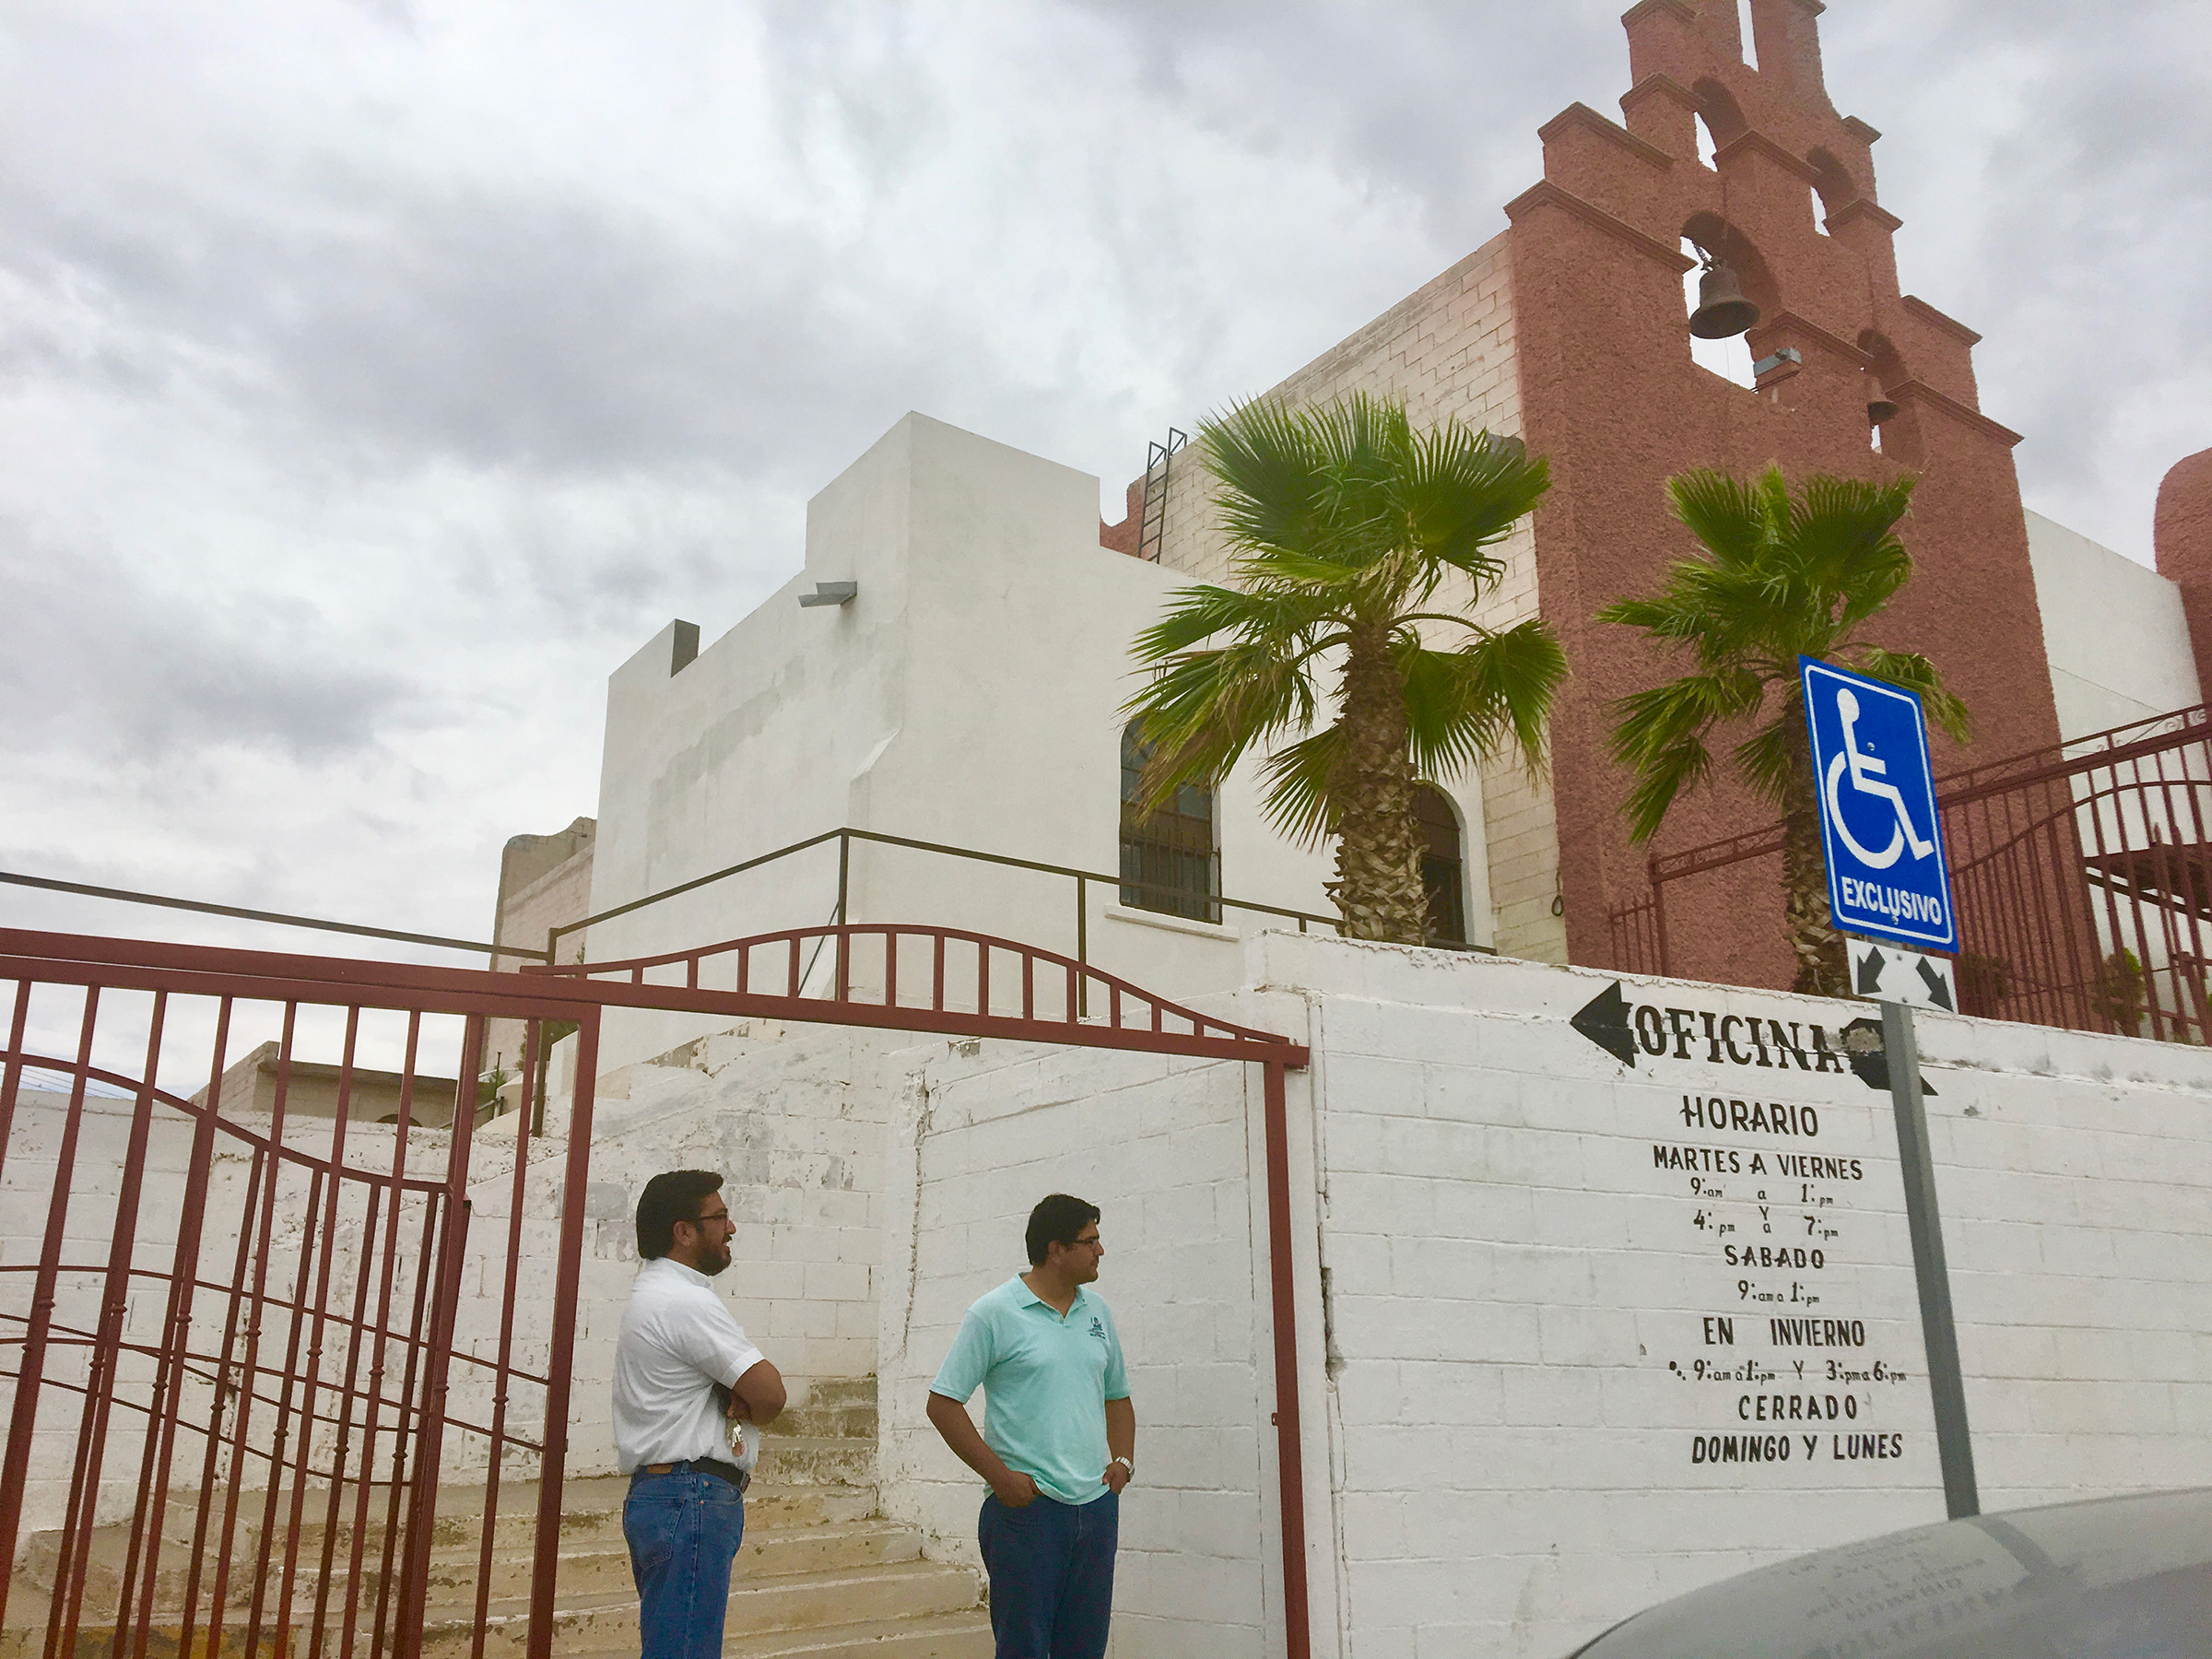 San Juan Apostol Evangelista church, where Sister Maria Antonia Aranda works, doubles as a migrant shelter in Juárez, see here in August 2019.